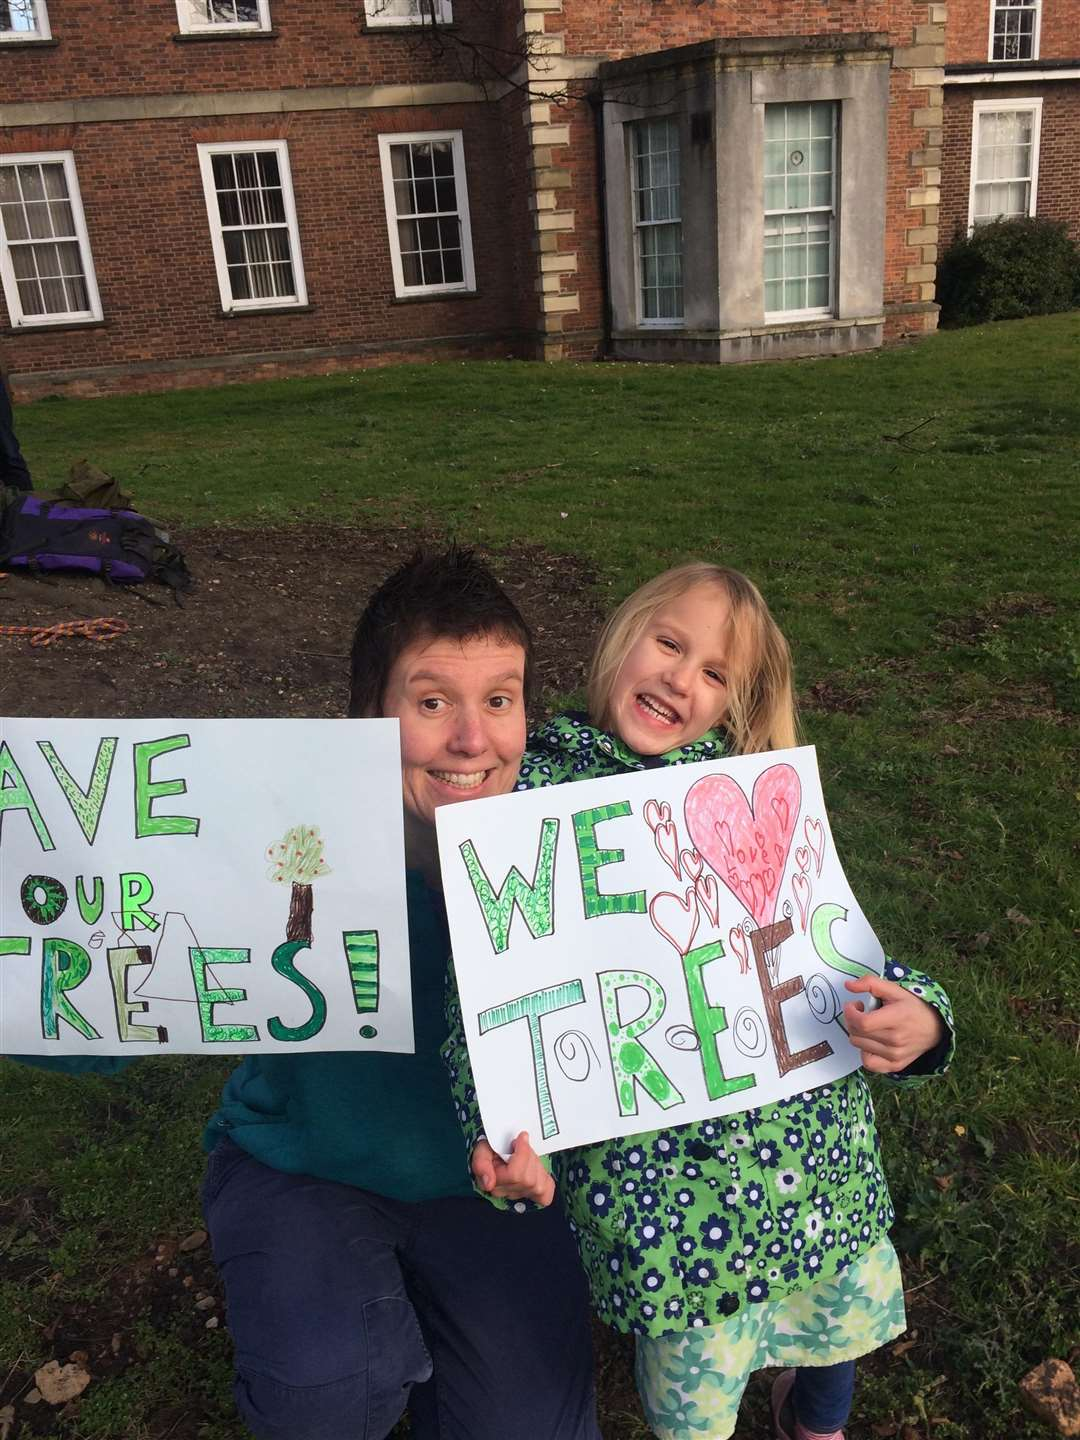 Adults and children gathered for a save our trees protest (7470447)